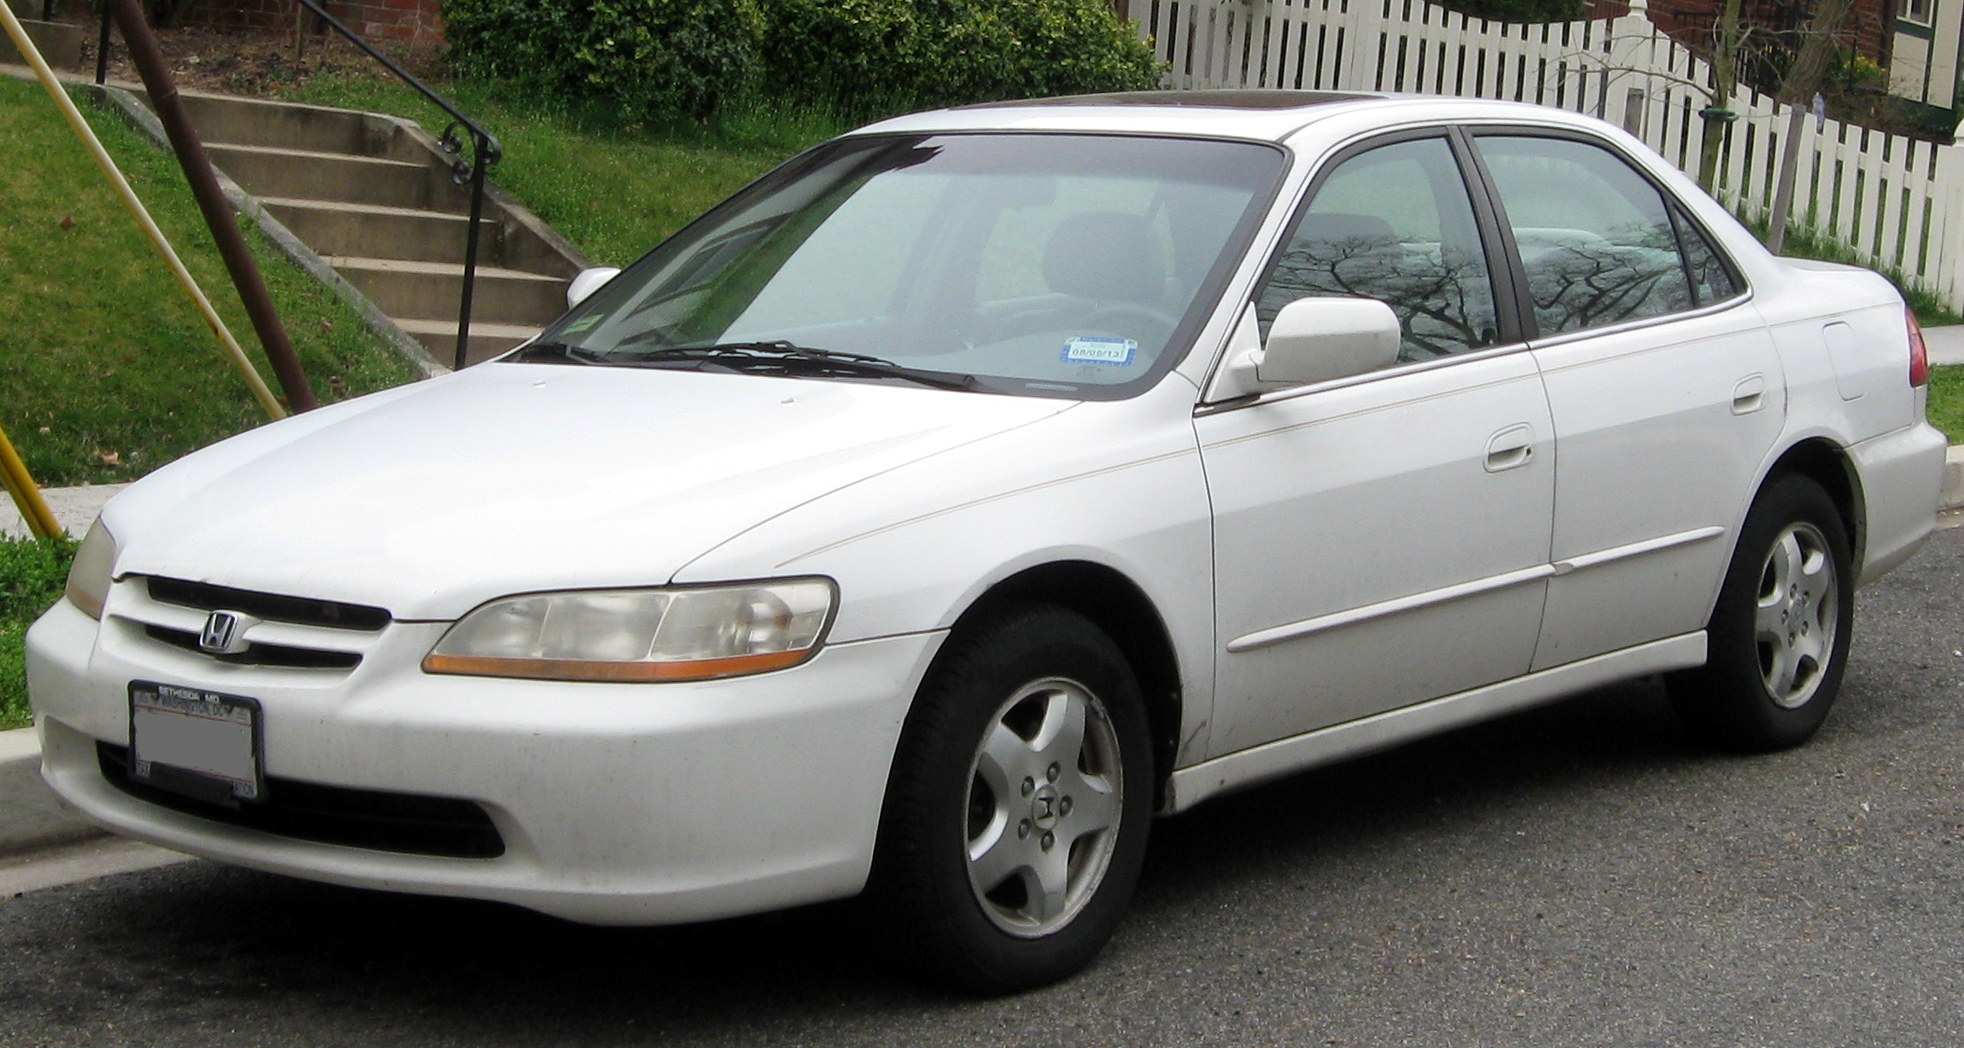 1998 Honda Accord #8 Honda Accord #8